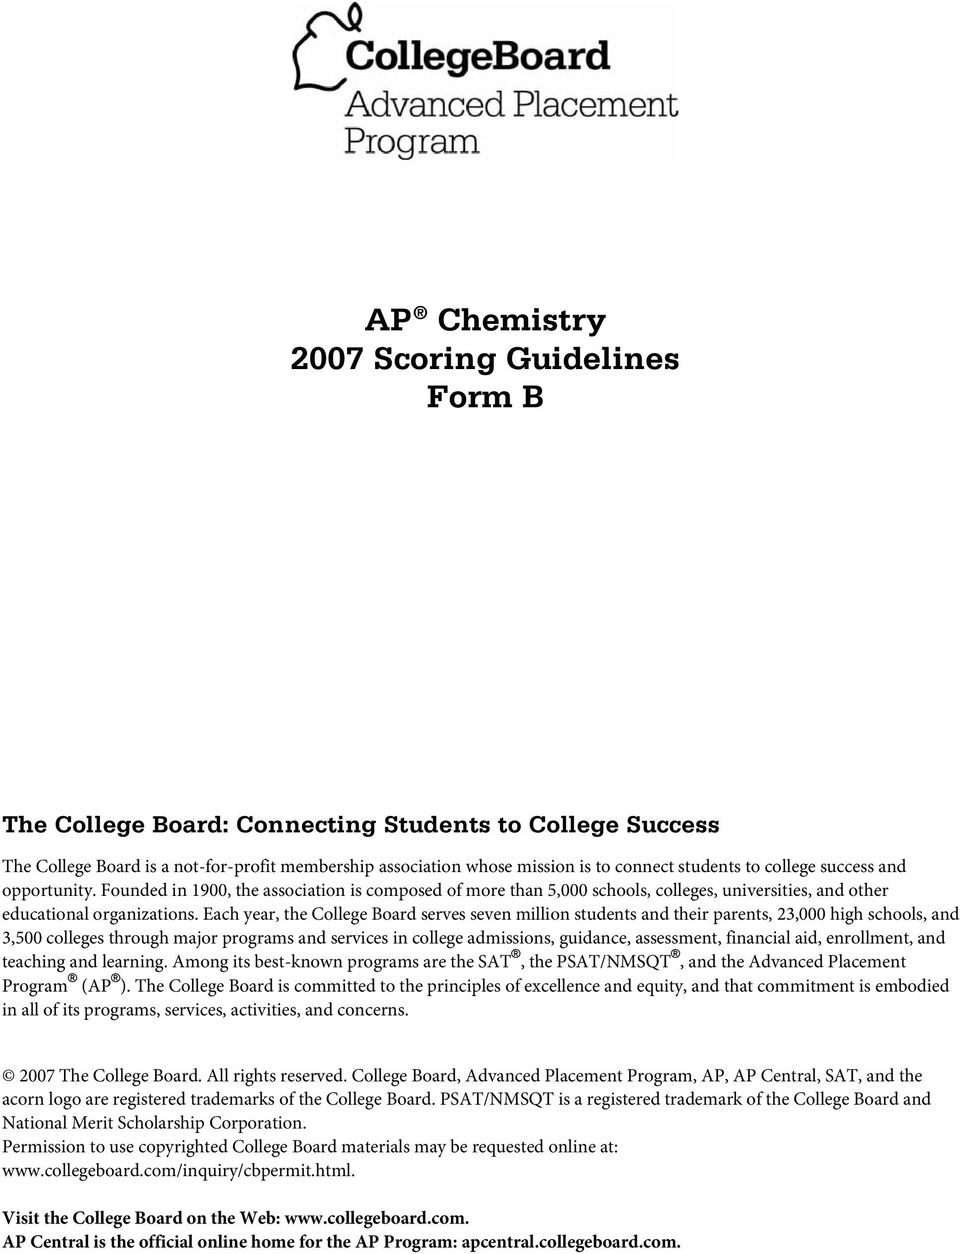 Each year, the College Board serves seven million students and their parents, 23,000 high schools, and 3,500 colleges through major programs and services in college admissions, guidance, assessment,